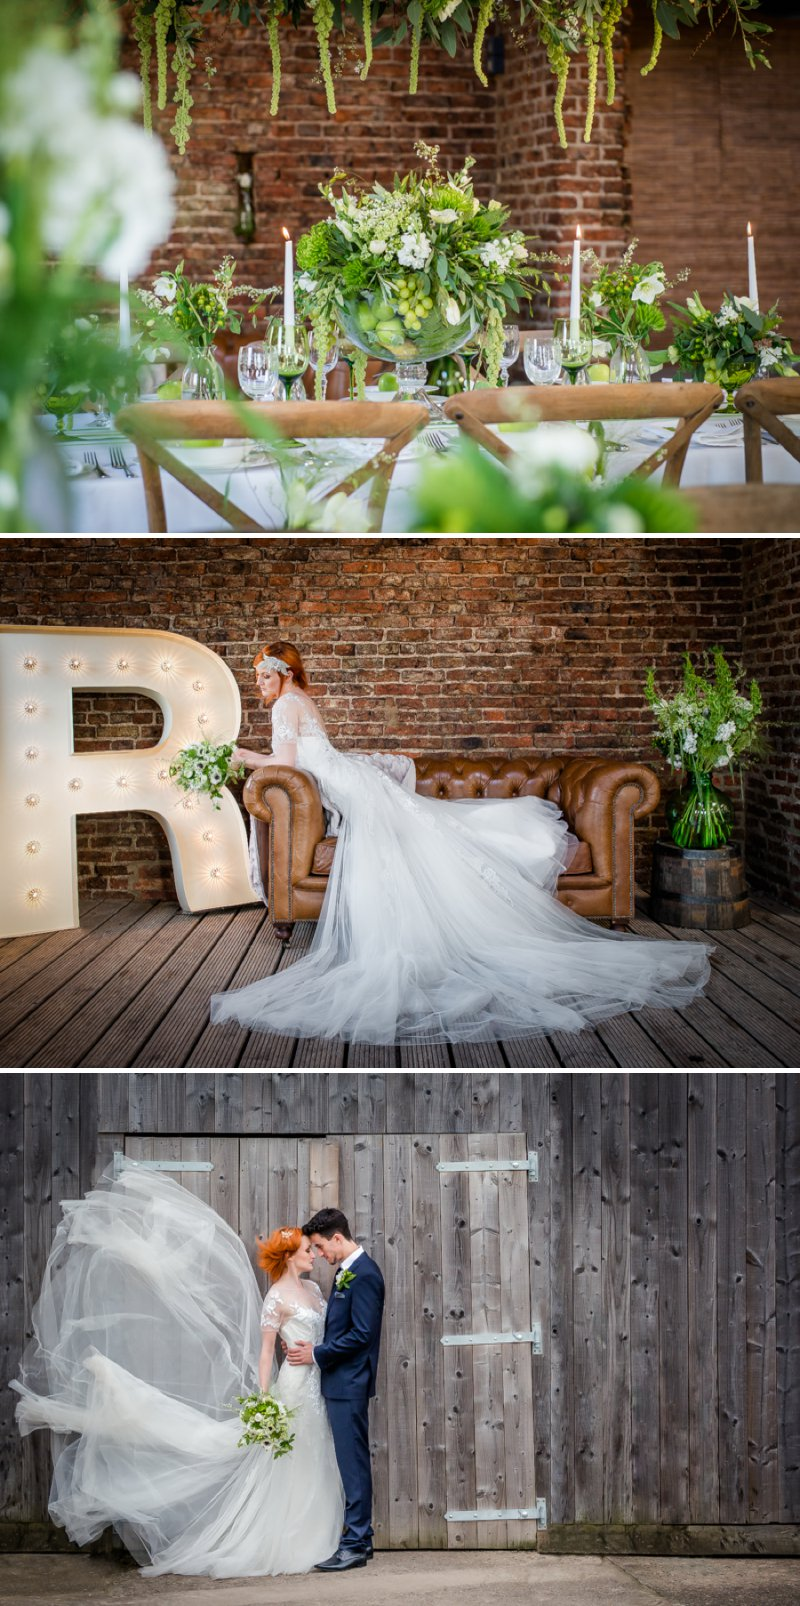 Rustic Glamour Inspired Shoot At York Maze With An Apple Green Colour Scheme Lots of Green Foliage And White Flowers With Images By Dominic Wright Photography 1 Rustic Glamour.